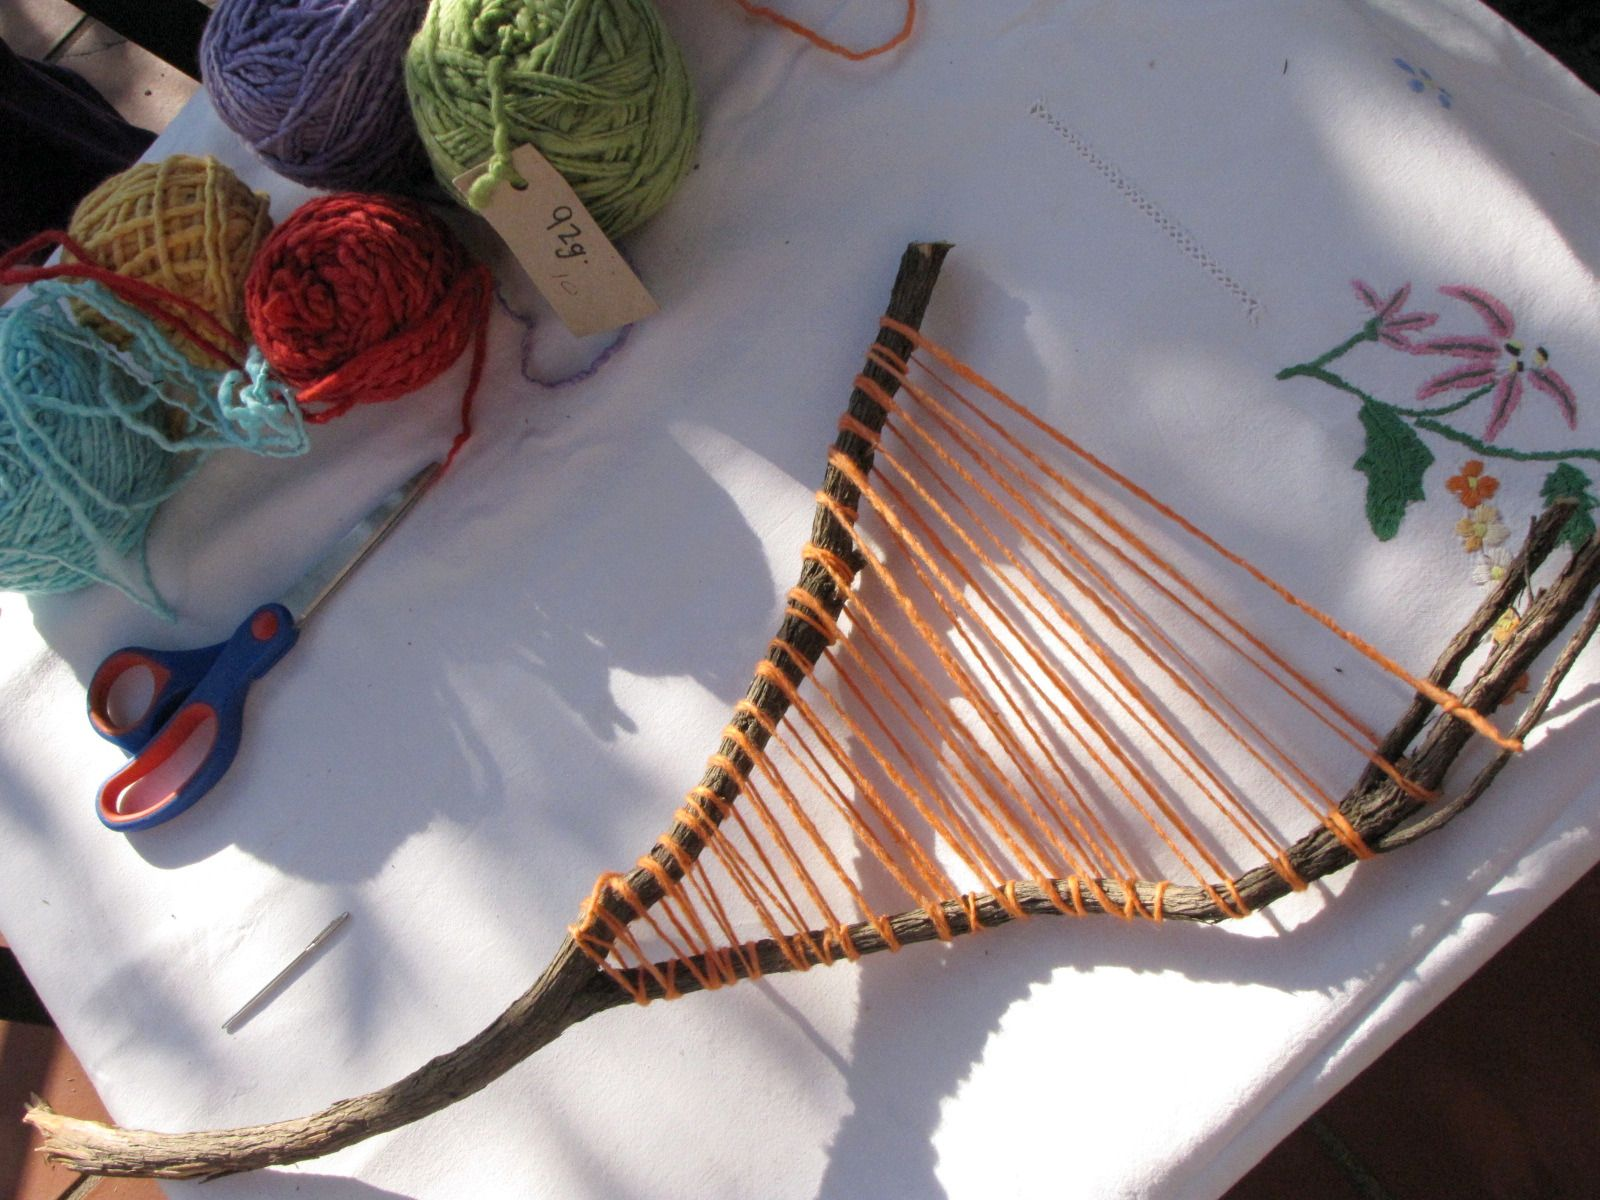 Today Erin And I Decided To Do Some Branch Weaving And We Have Put Together A Little Tutorial